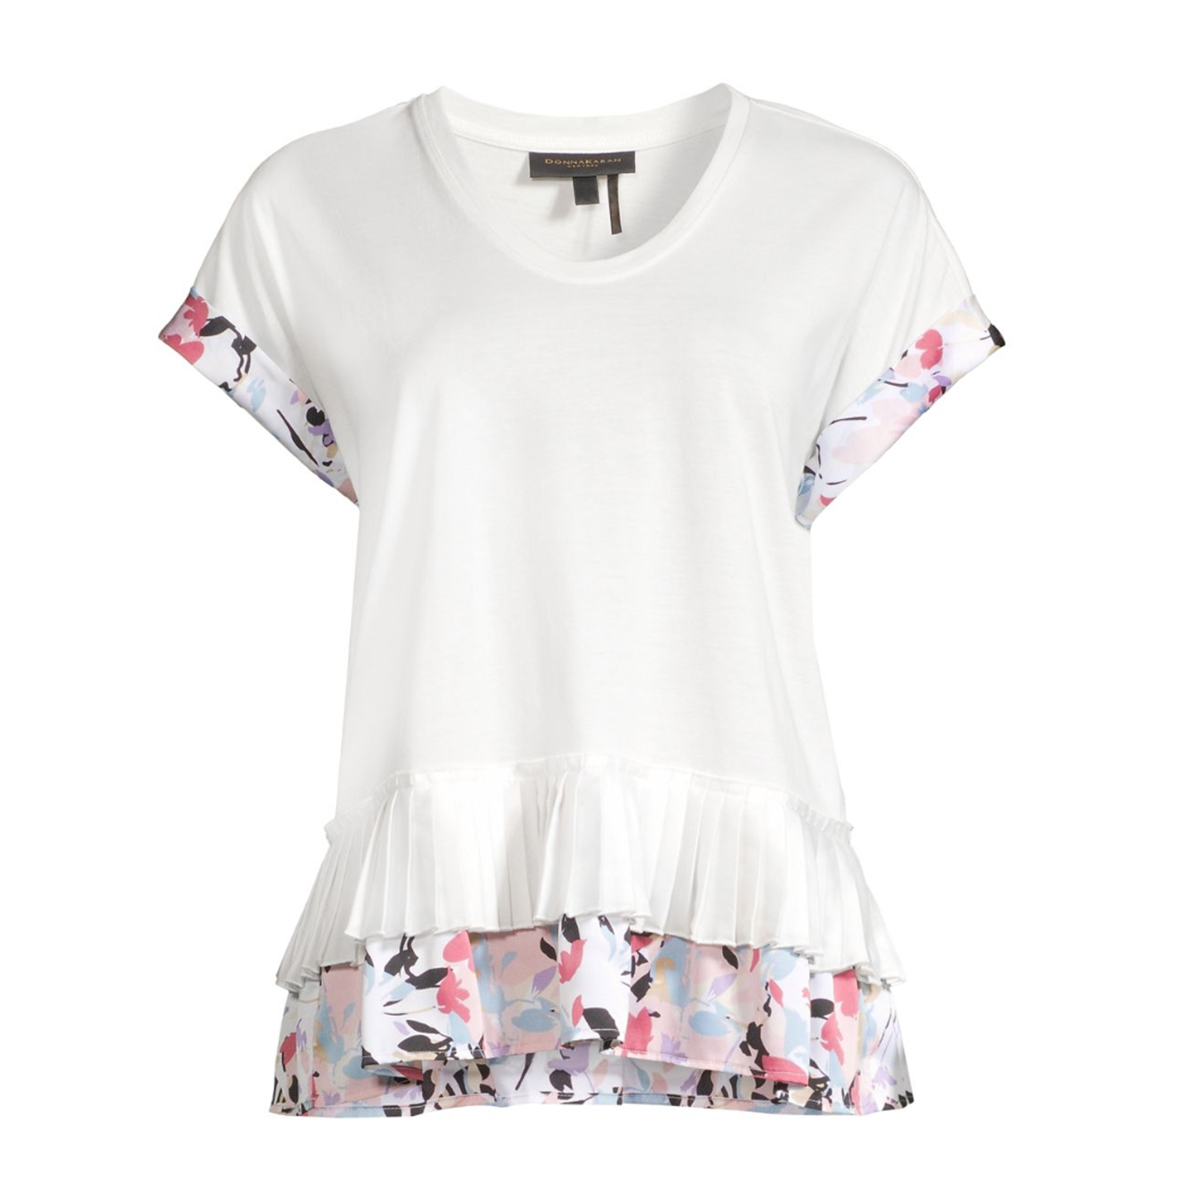 This DKNY Top Is 40% Off and Has the Perfect Floral Flourish